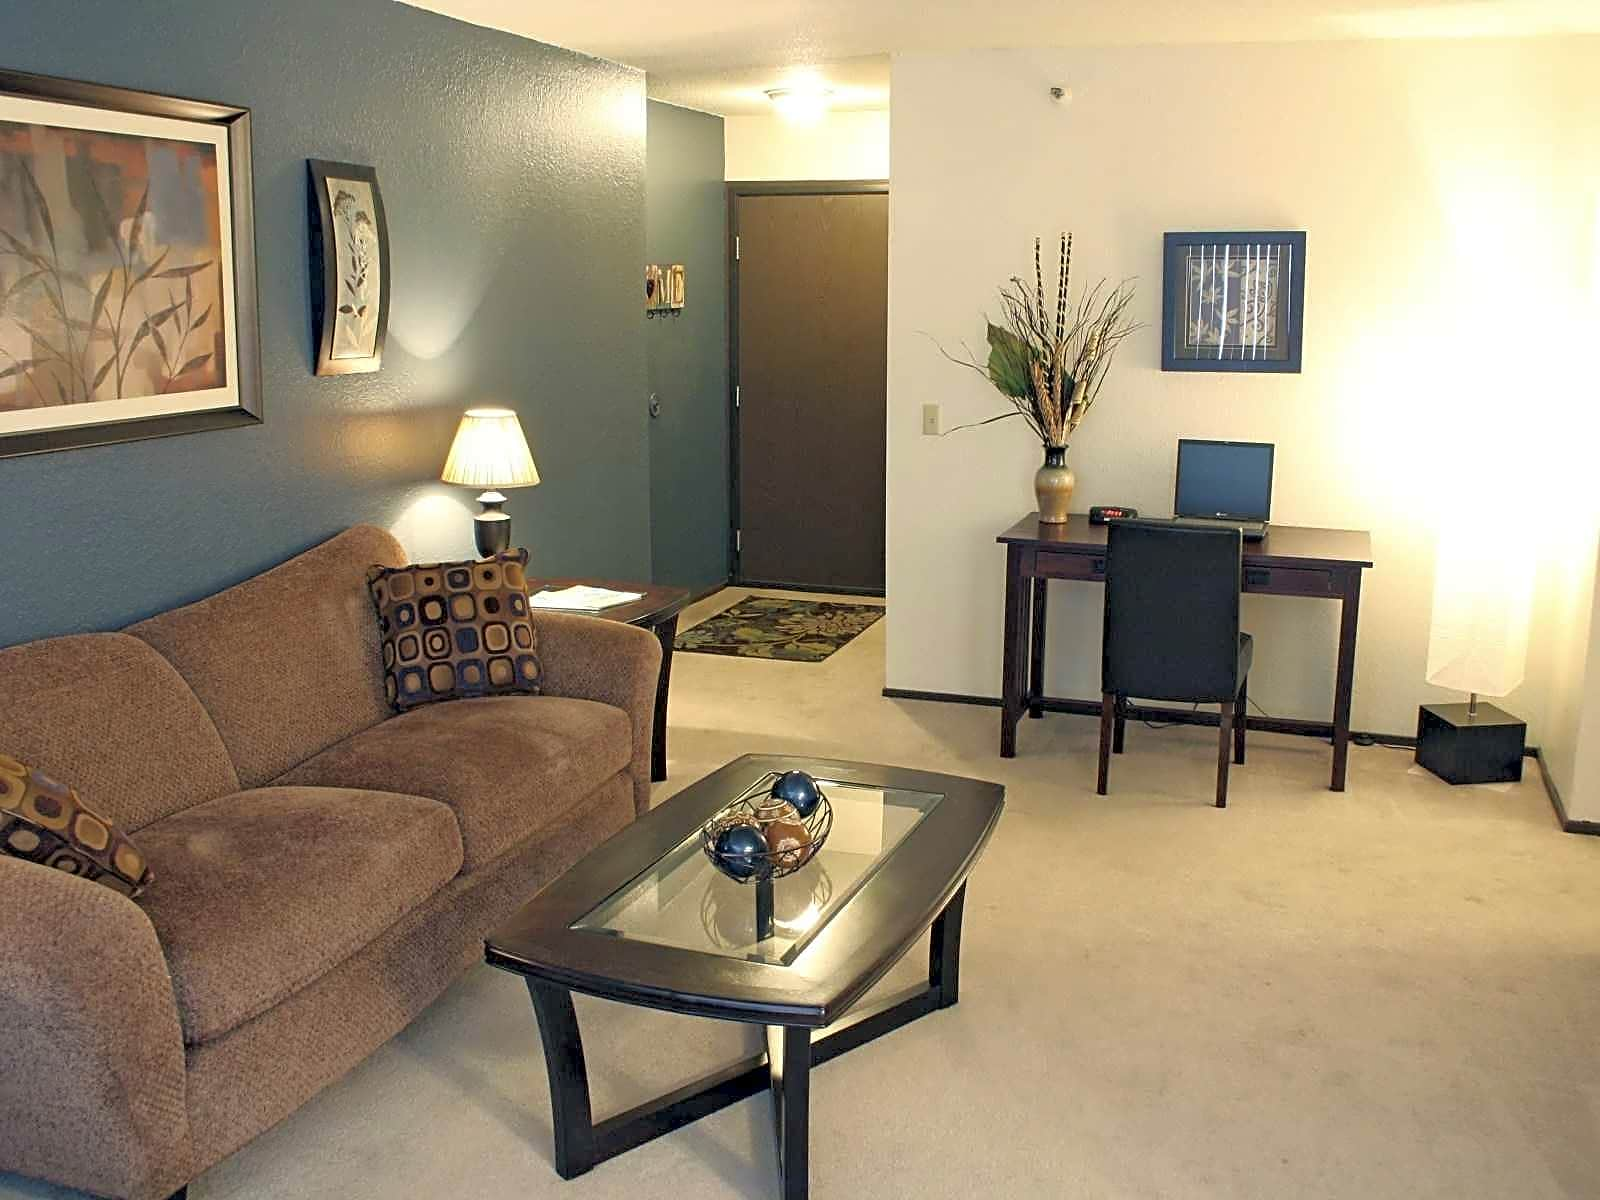 Pet Friendly Apartments In Rochester Mn Pet Friendly Houses For Rent